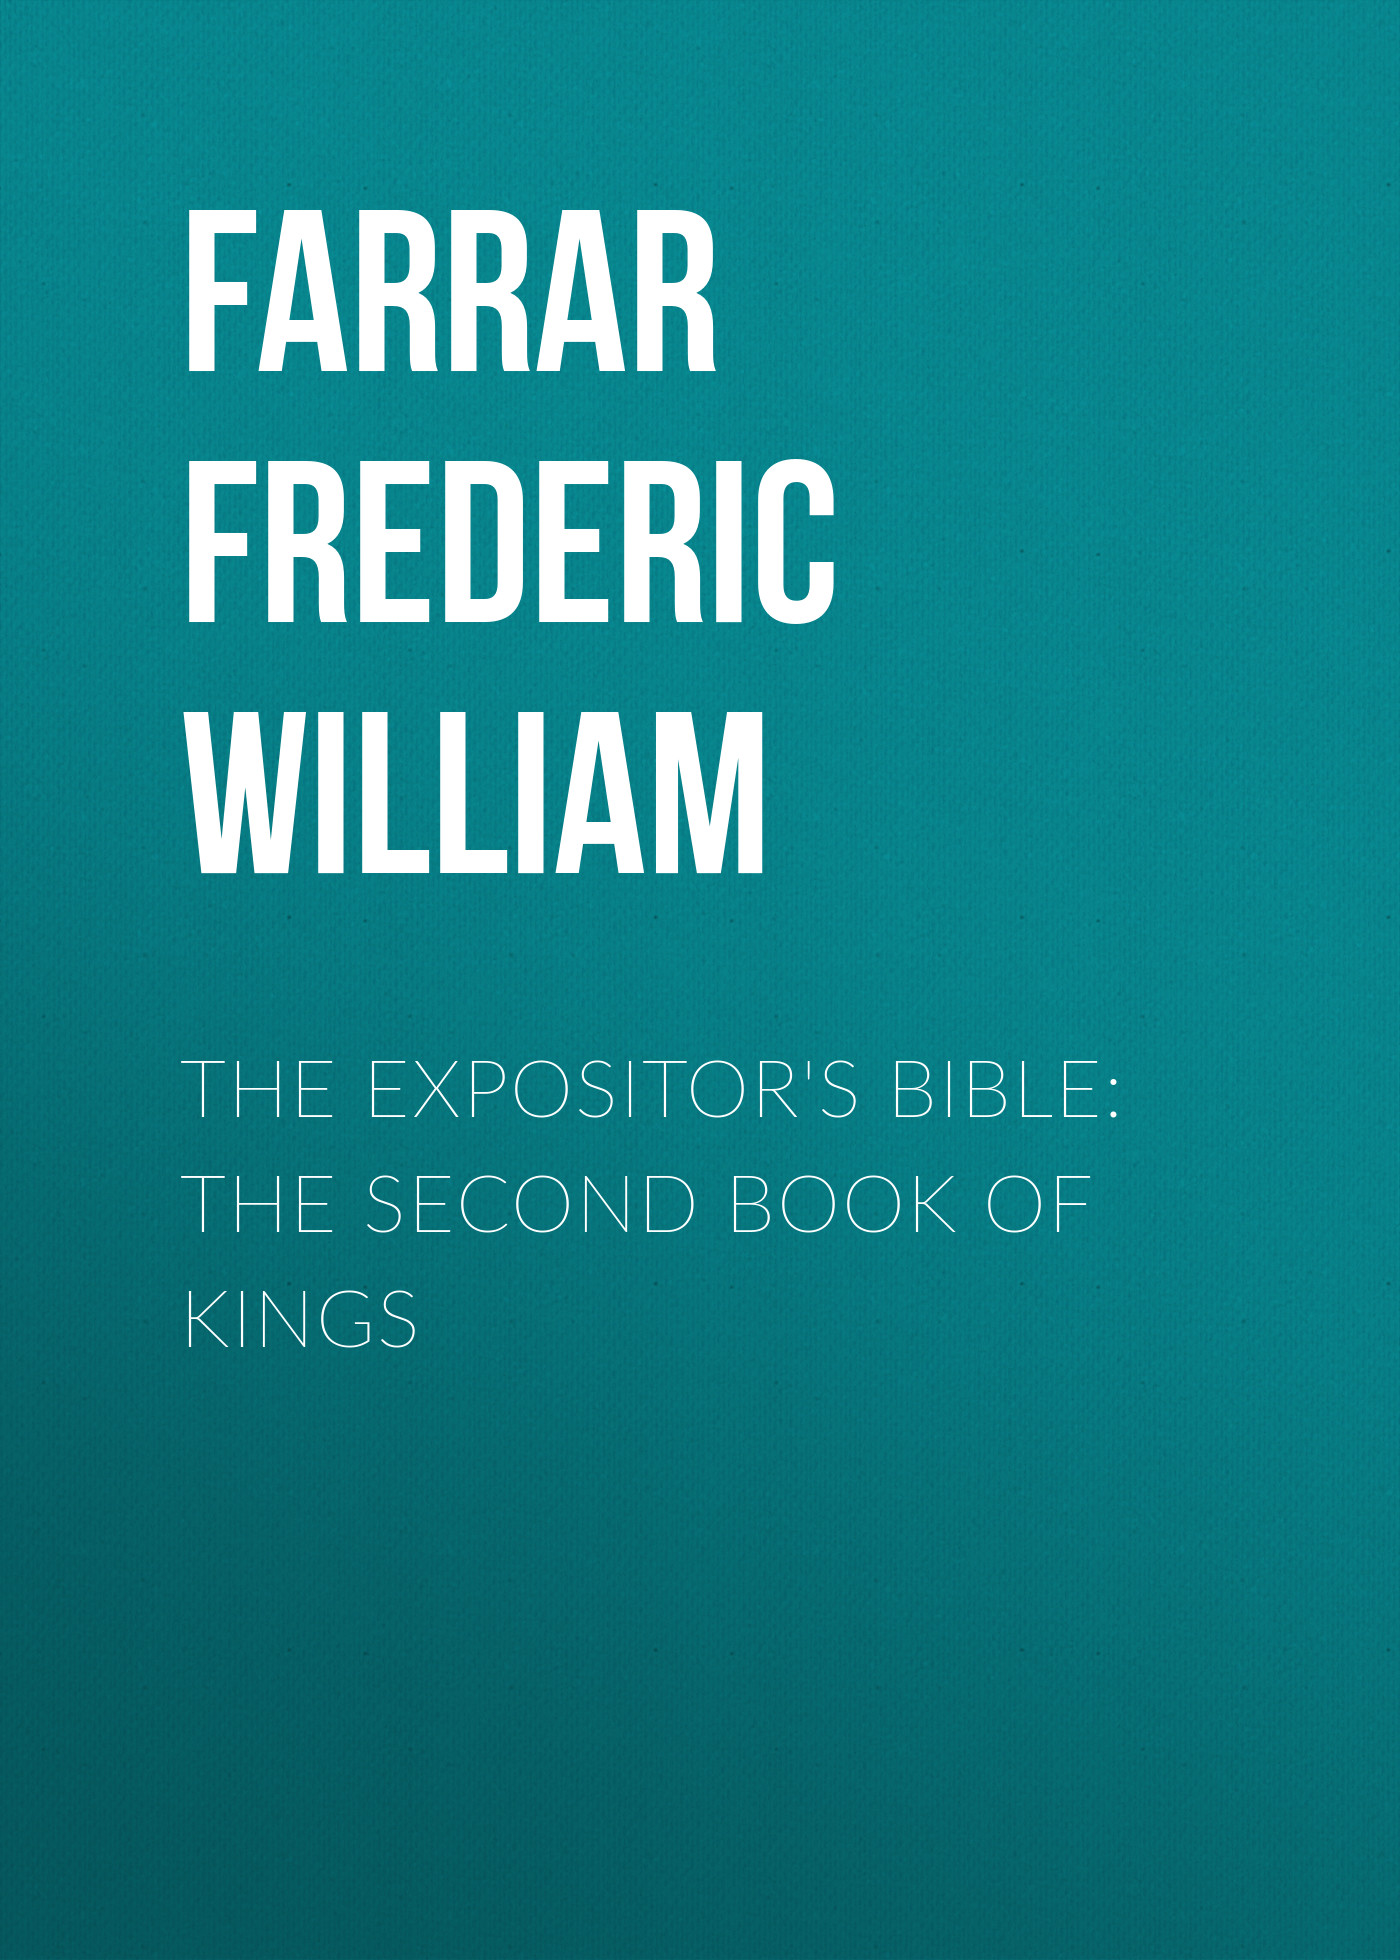 Farrar Frederic William The Expositor's Bible: The Second Book of Kings bennett william henry the expositor s bible the books of chronicles